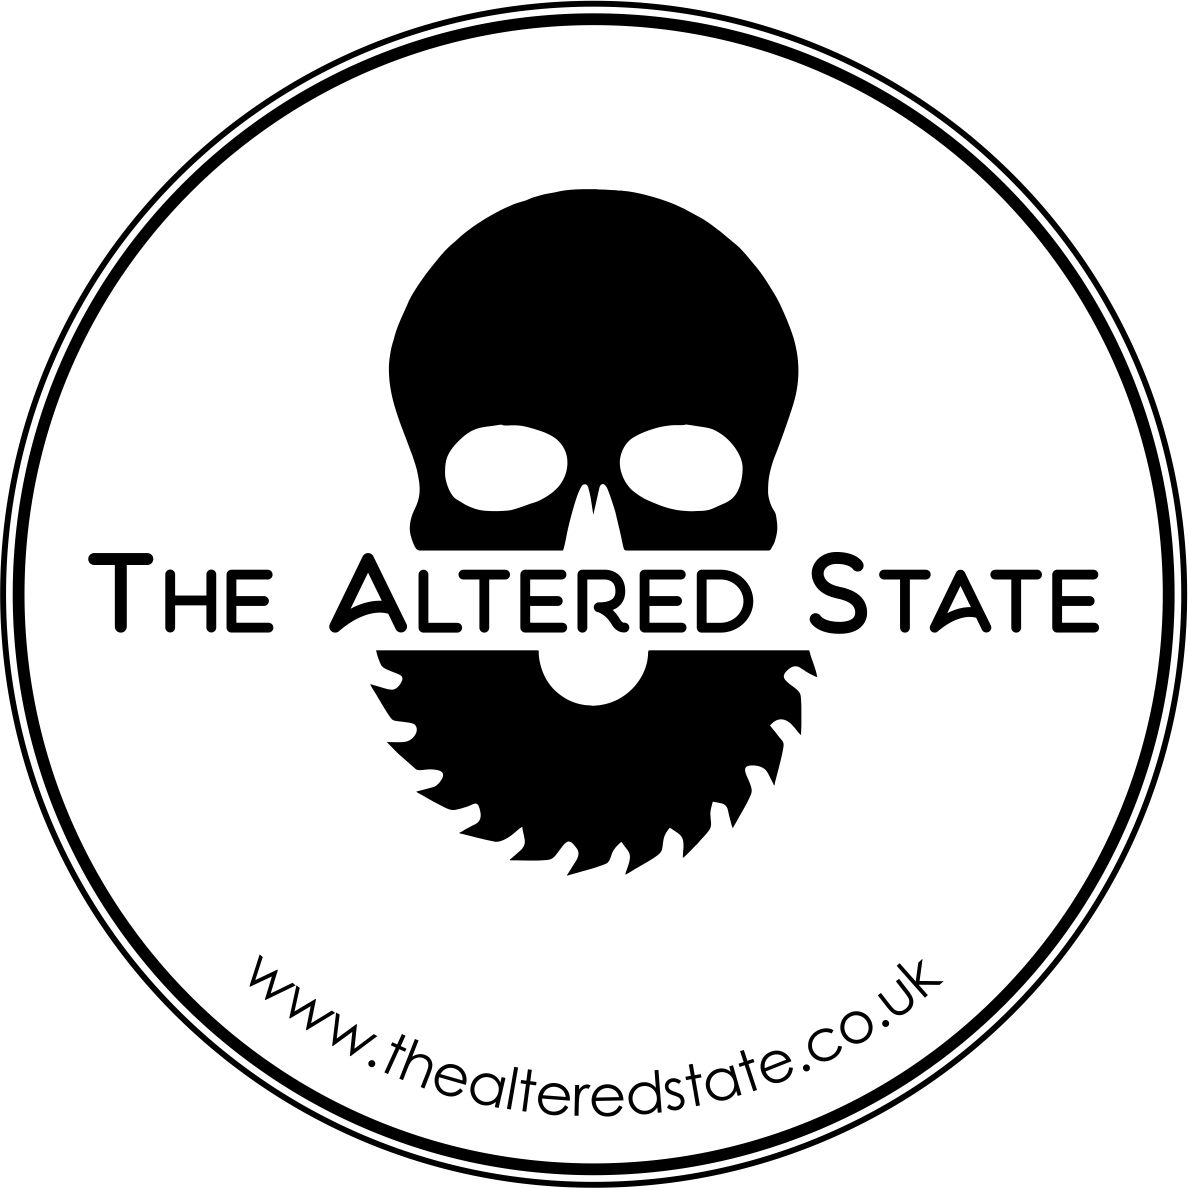 The Altered State